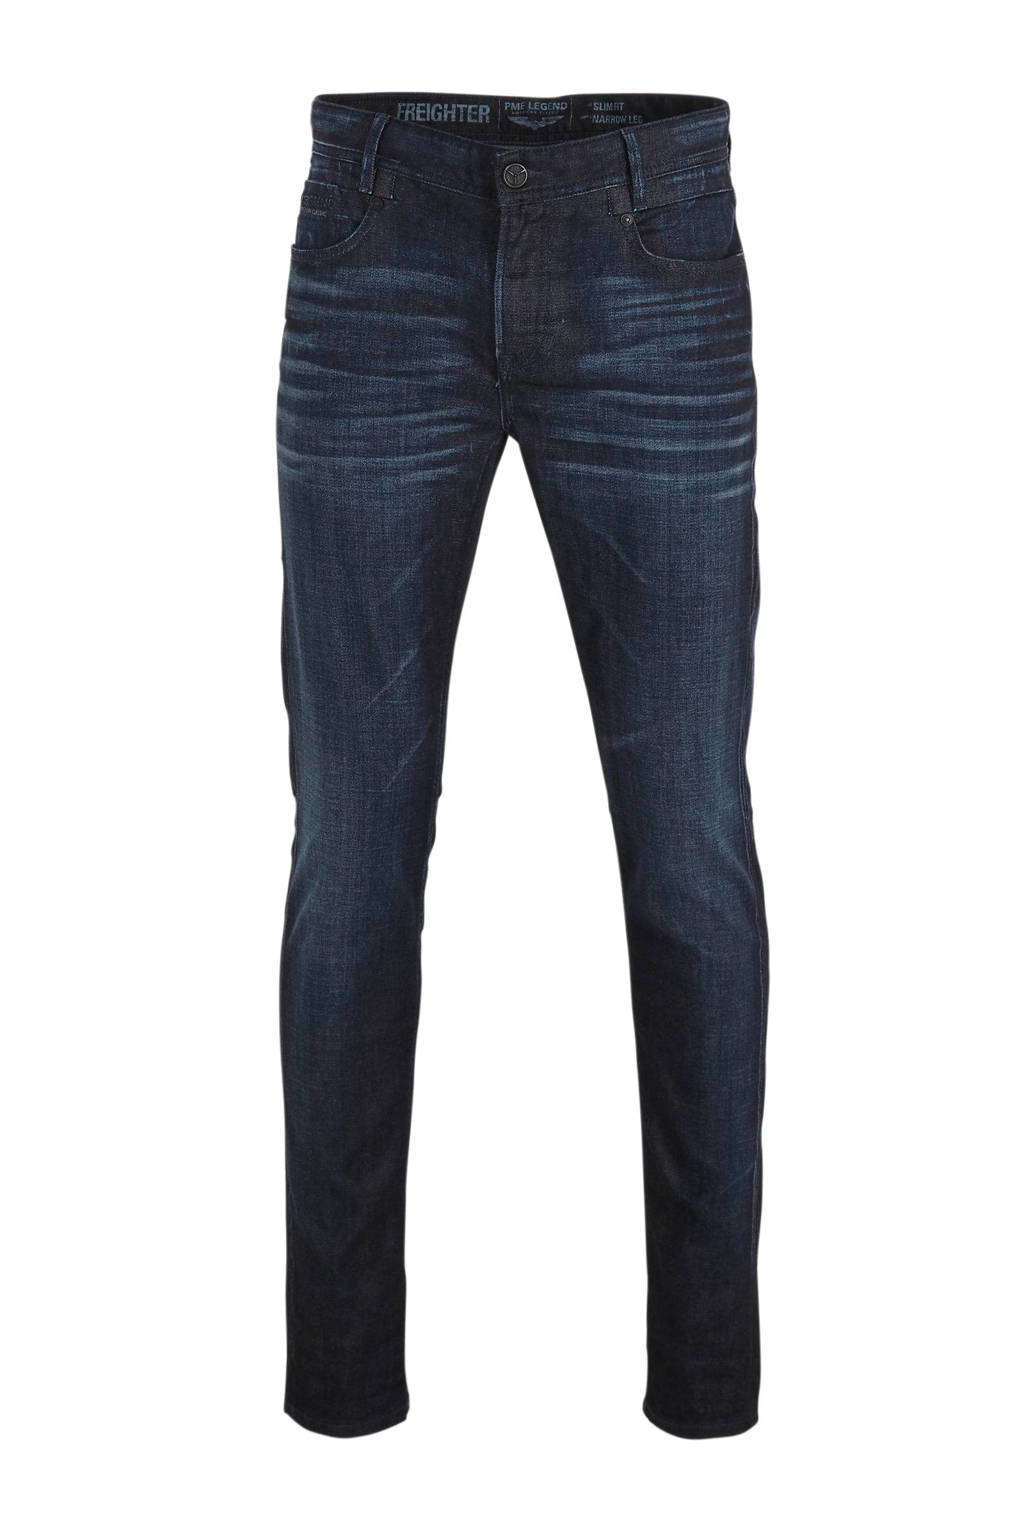 PME Legend slim fit jeans Freighter dark blue denim, Dark blue denim